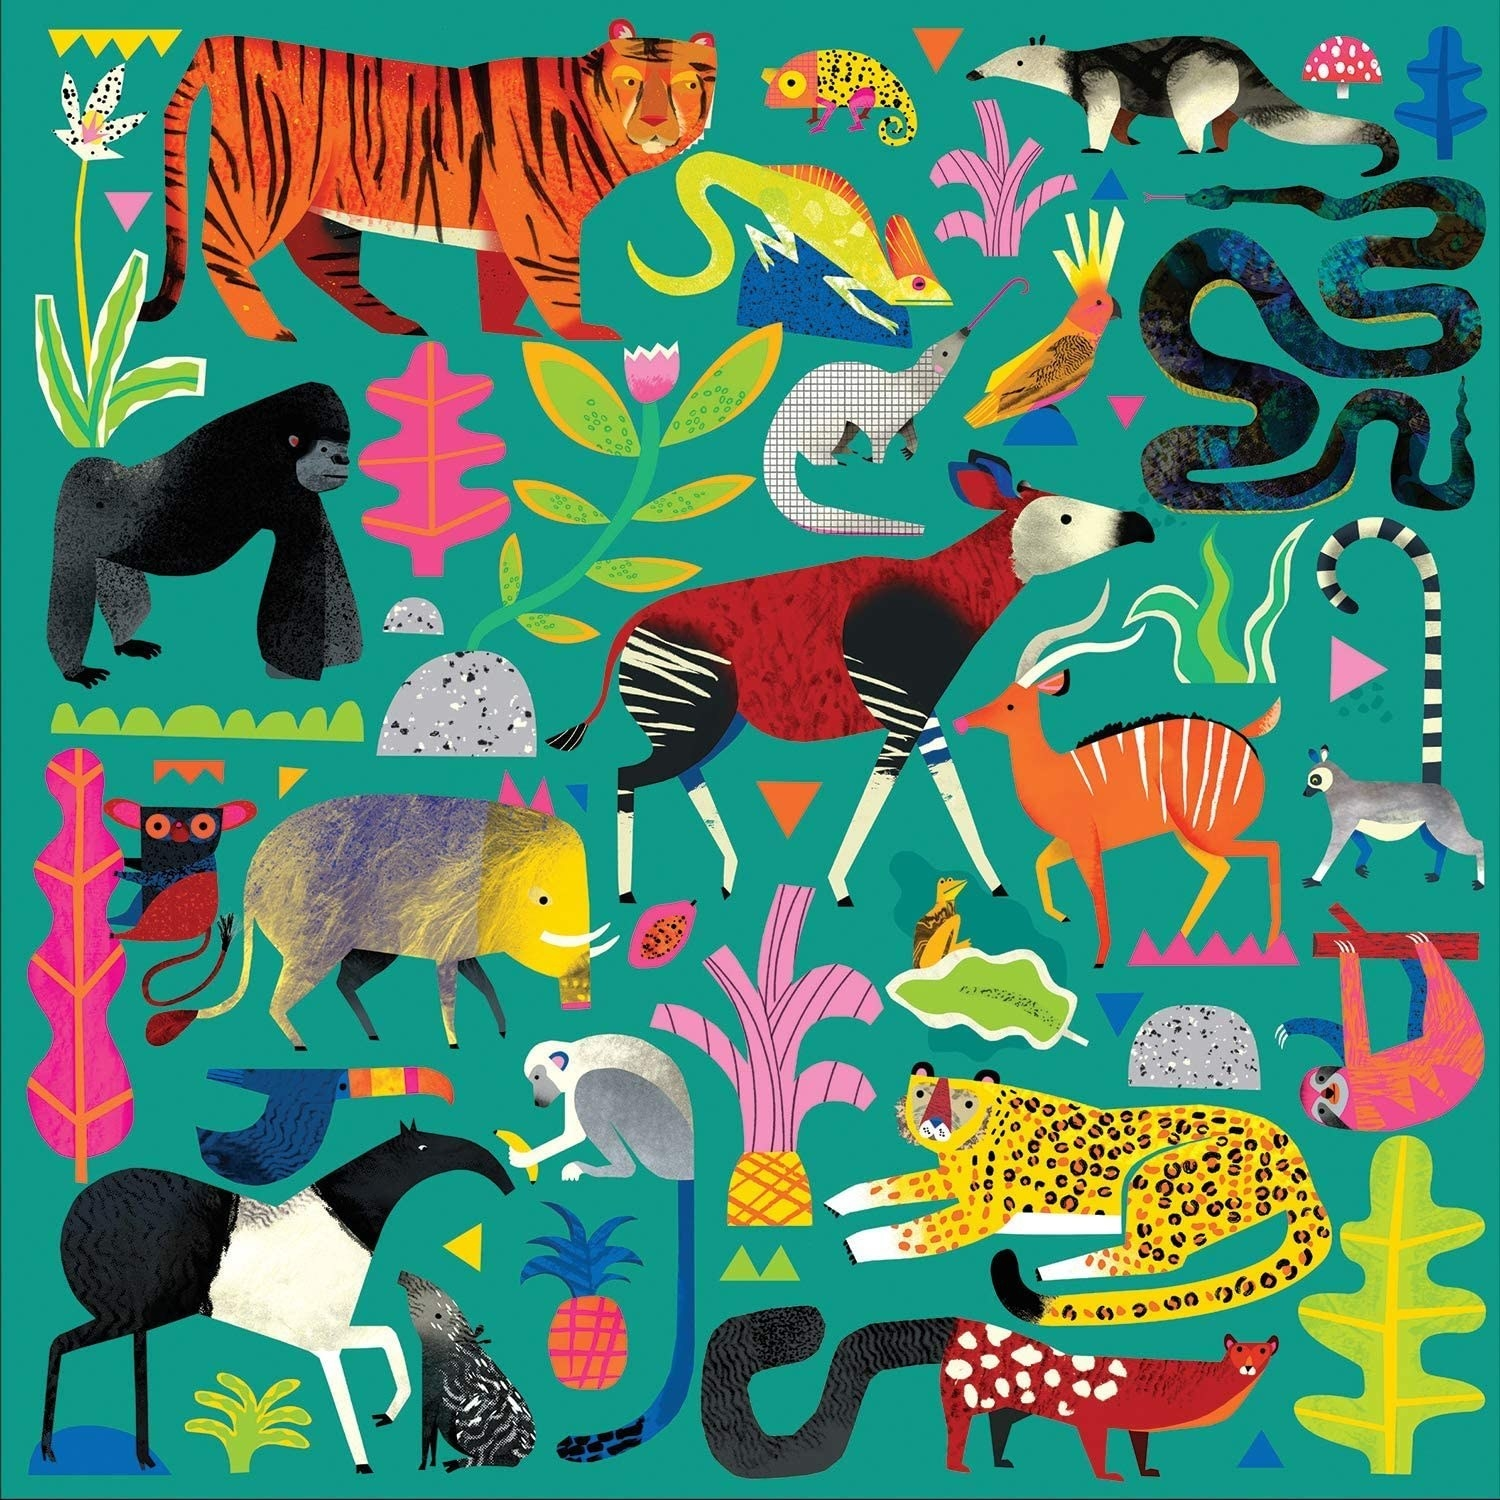 The puzzle has various animals on it such as a tiger, iguana, ant eater, sloth, monkey, leopard, lemur, and more